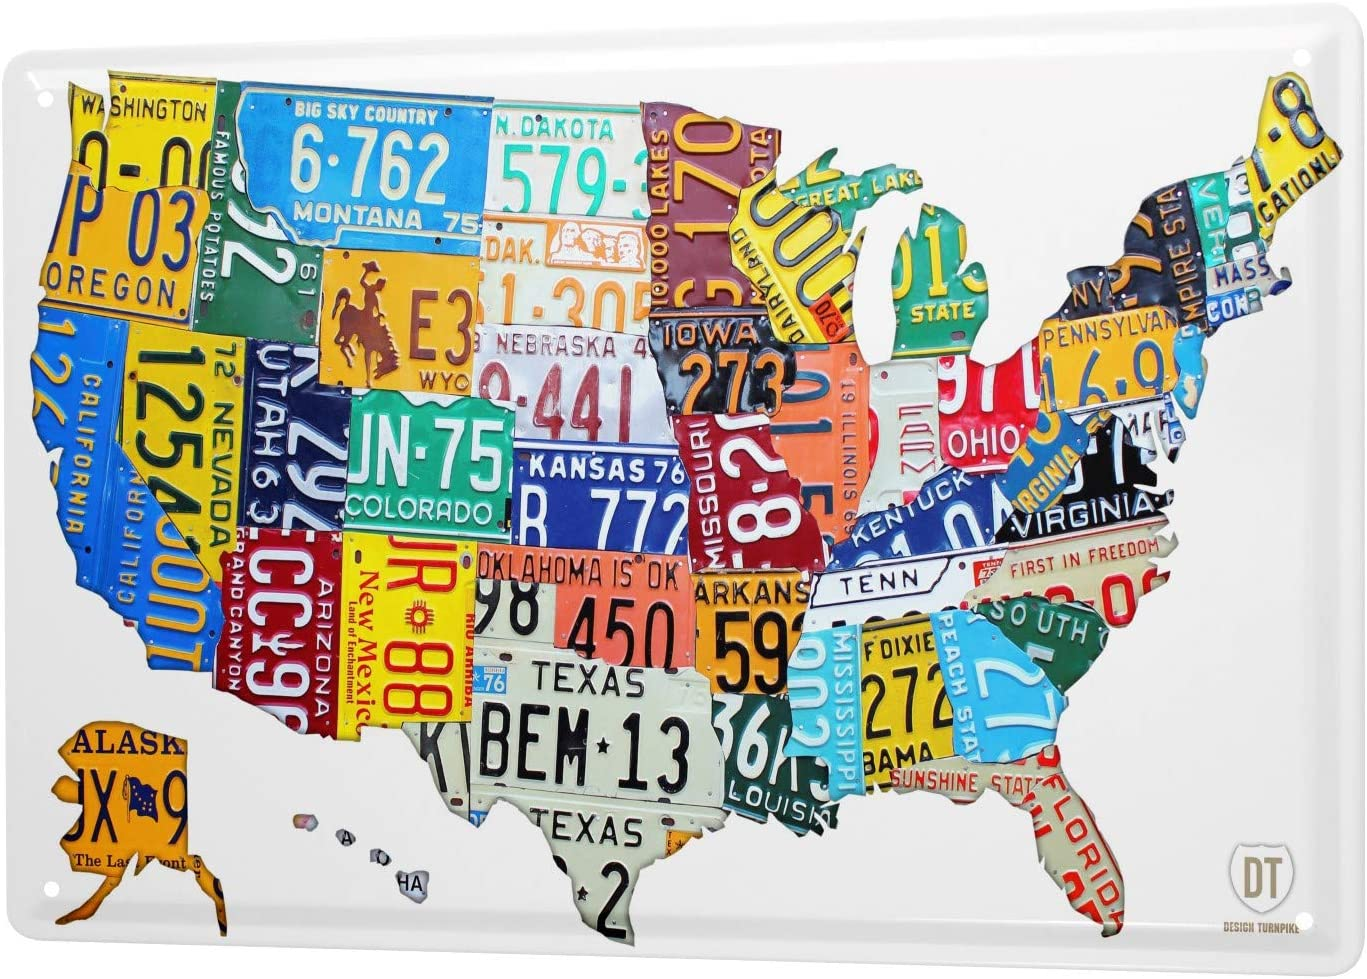 LEotiE SINCE 2004 Tin Sign Metal Plate Decorative Sign Home Decor Plaques 30 x 40 cm World Trip United States map